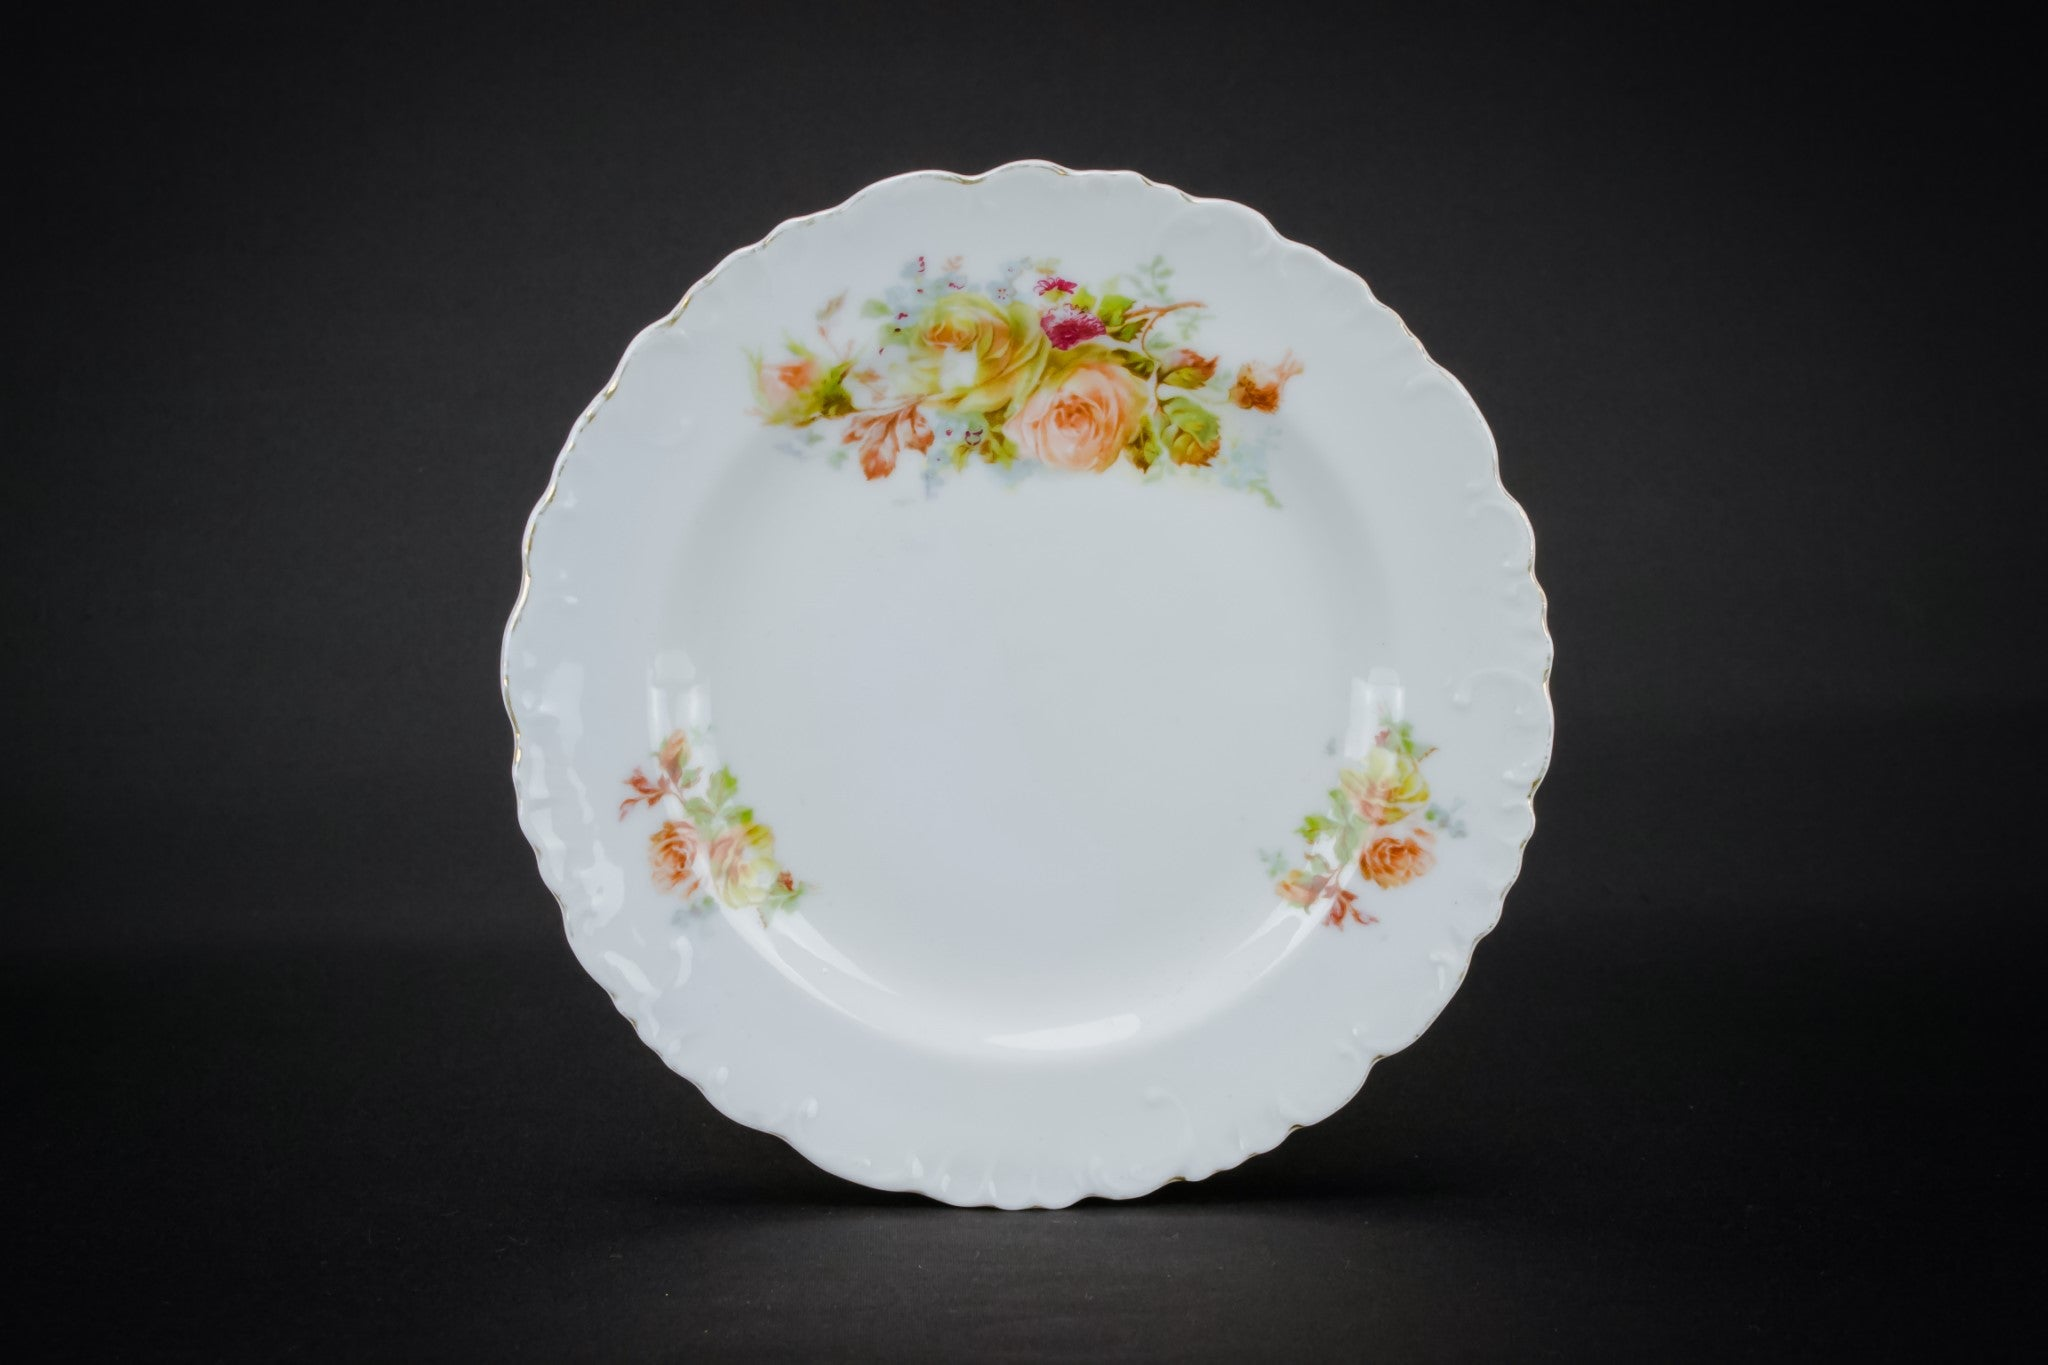 4 small porcelain plates